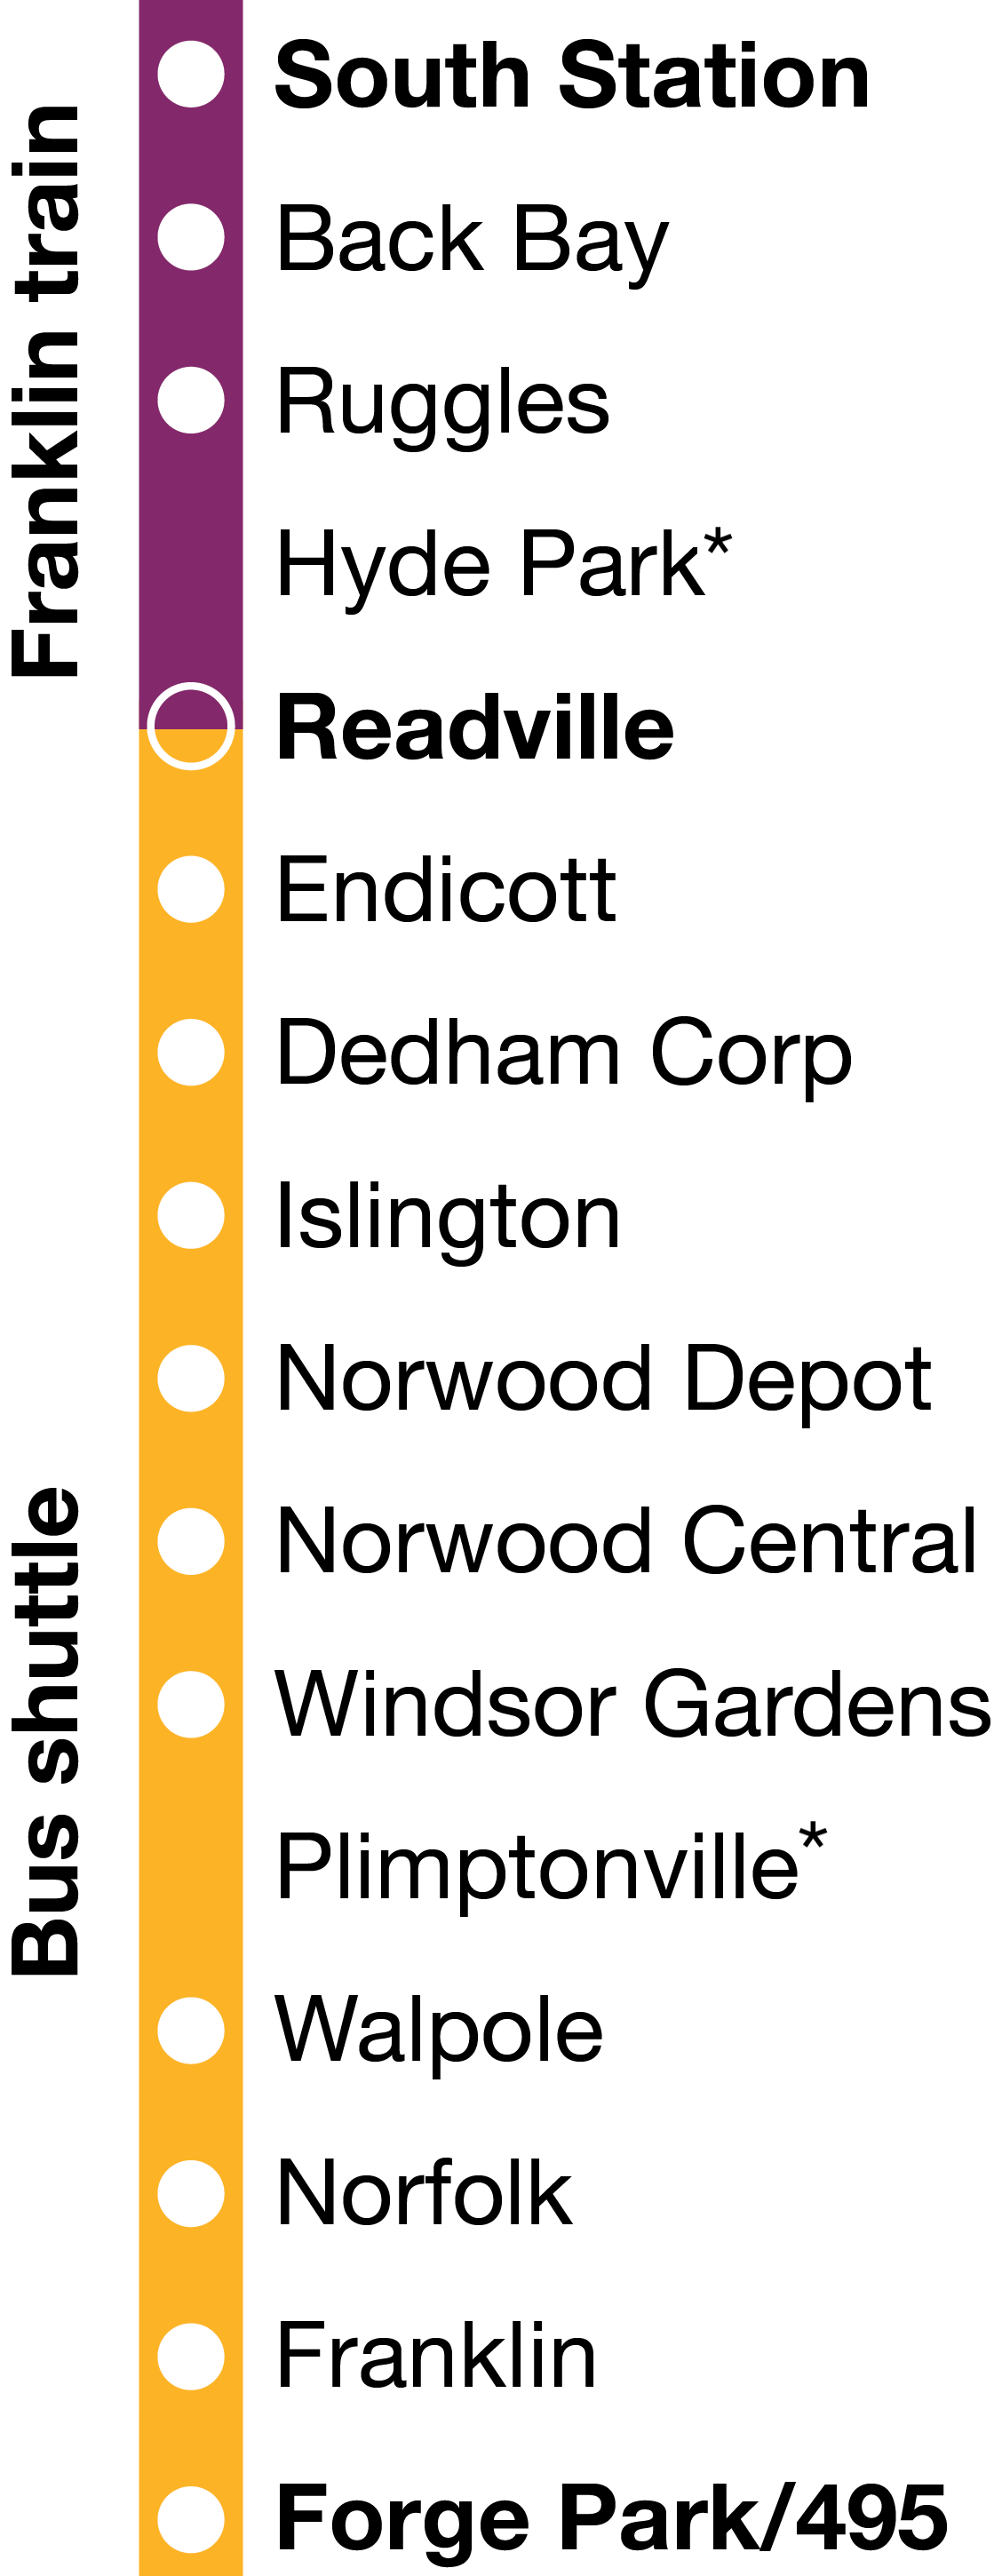 Graphic showing the Franklin Line. South Station, Back Bay, Ruggles, and Readville are along a purple line, to indicate Commuter Rail Service. Readville is half purple, half yellow. Readville, Endicott, Dedham Corp, Islington, Norwood Depot, Norwood Central, Windsor Gardens, Walpole, Norfolk, Franklin, and Forge Park/495 are on a yellow line, to indicate bus shuttle service.